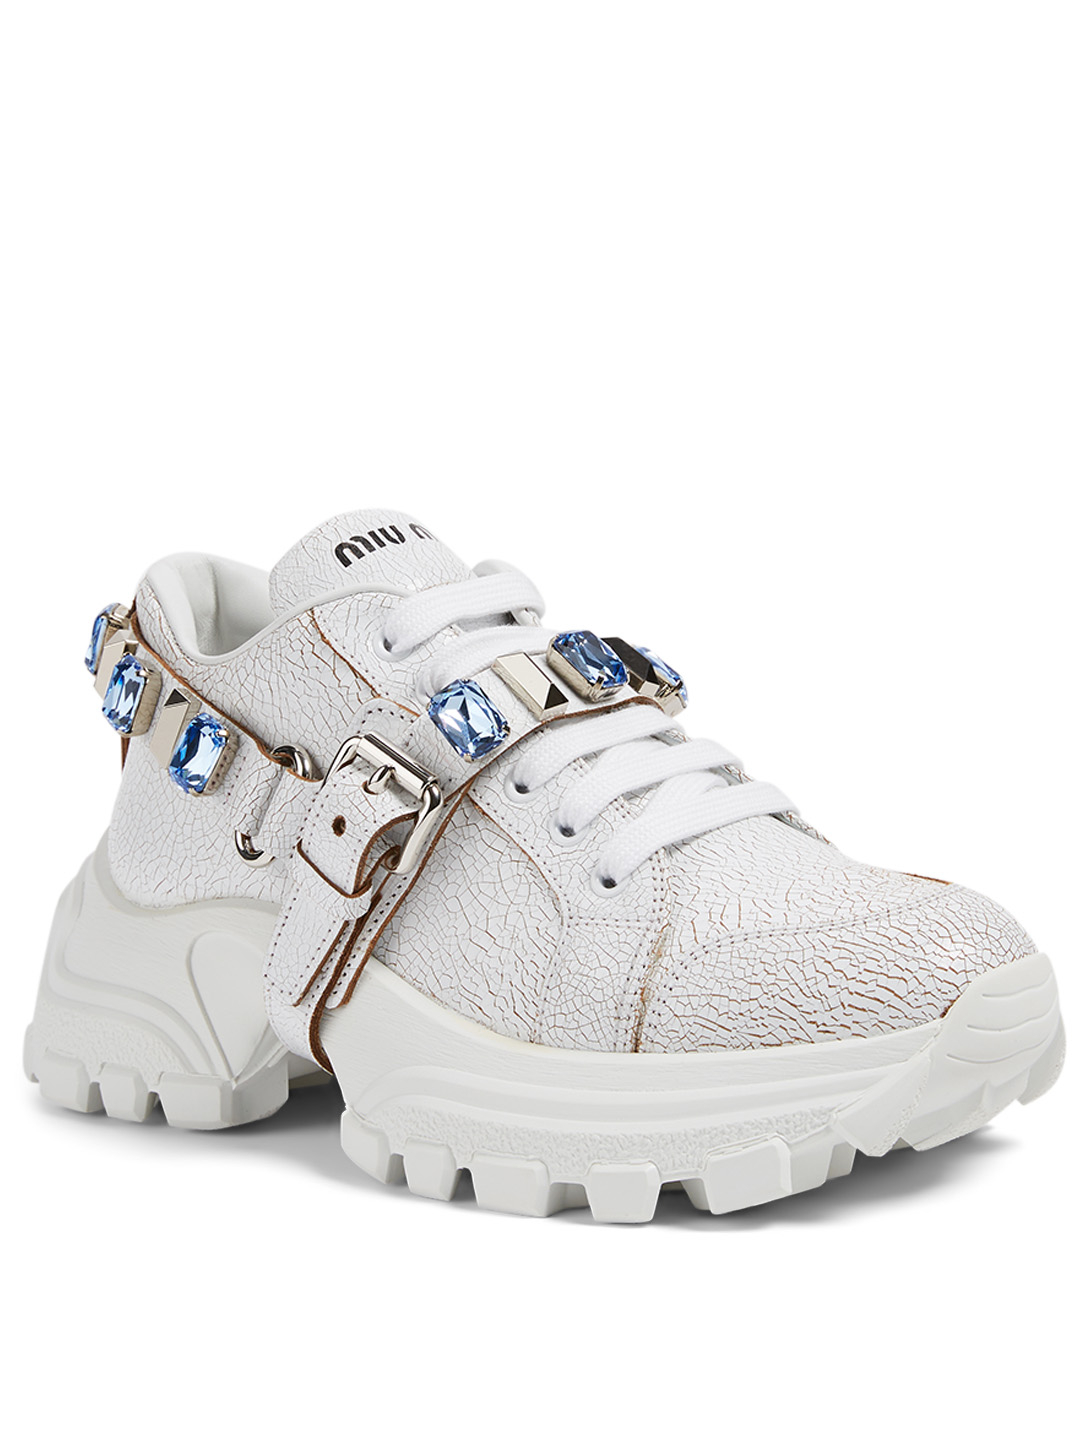 MIU MIU Cracked Leather Sneakers With Crystal Strap Women's Blue